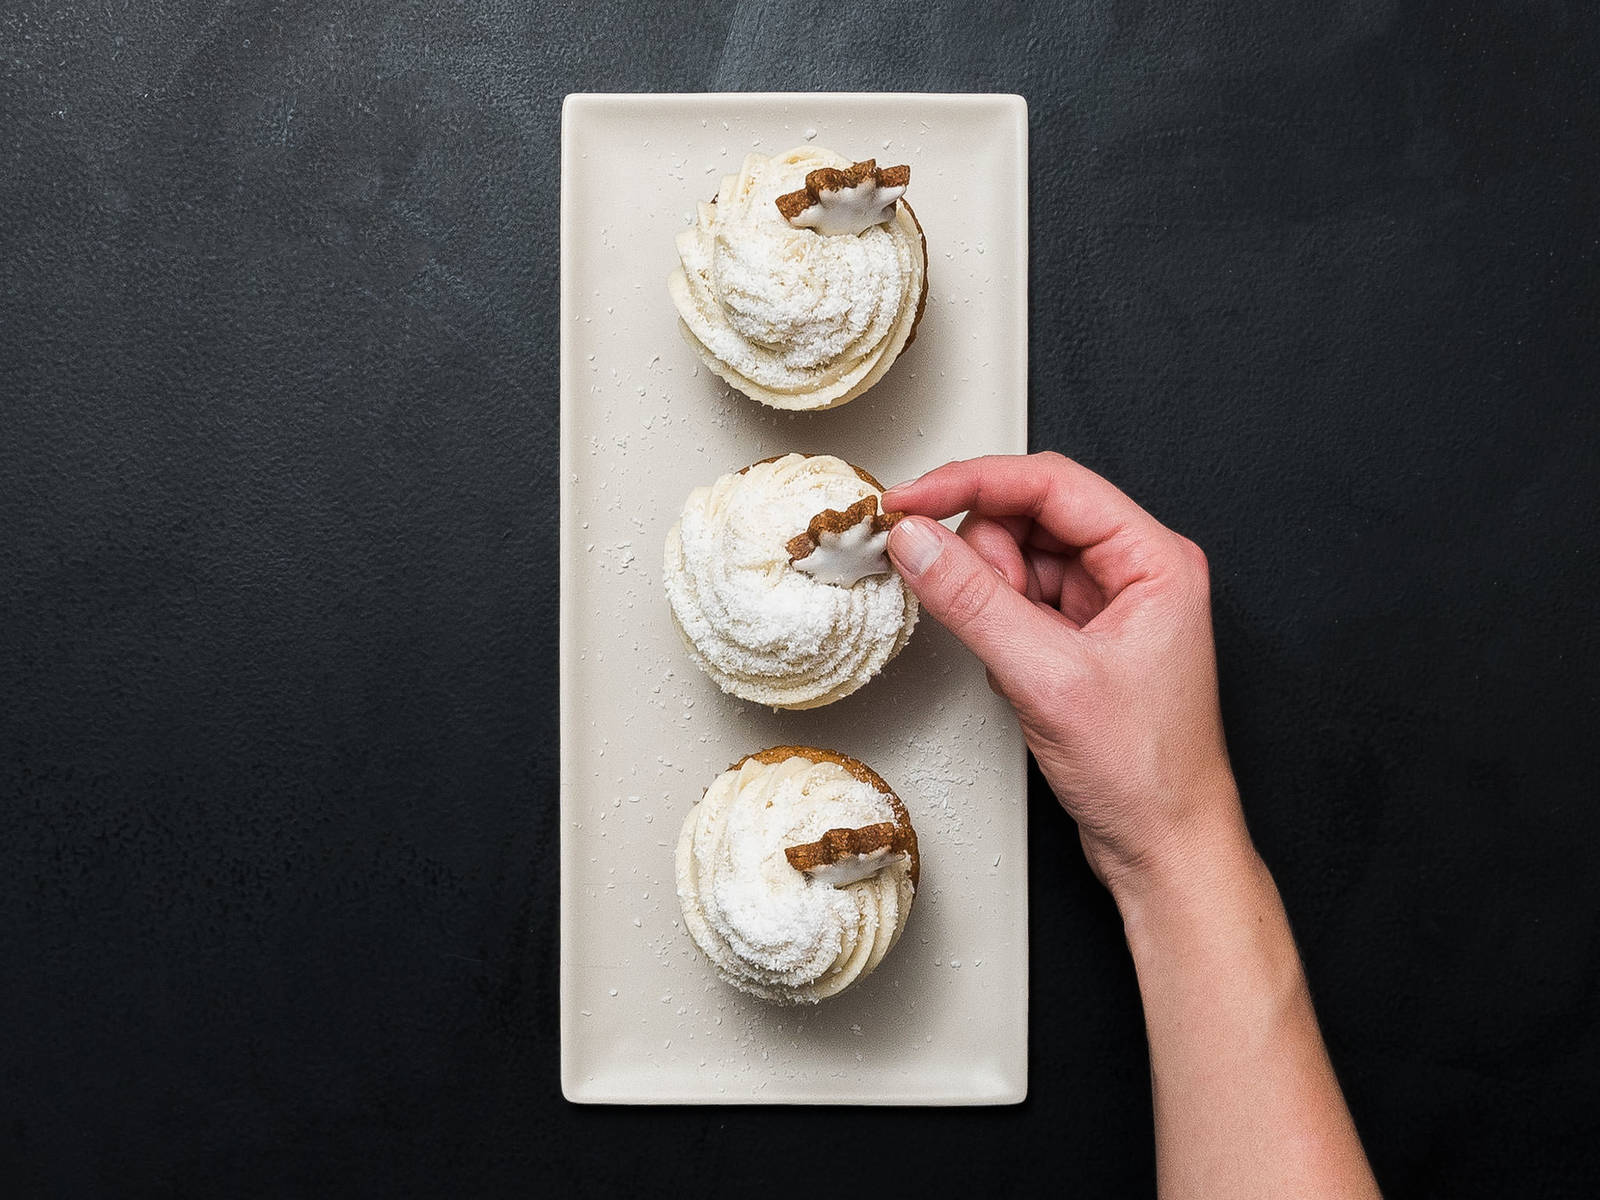 Meanwhile, for the frosting: beat butter until smooth. Add confectioner's sugar little by little until combined. Add vanilla sugar and cream and beat until fluffy in consistency. Pipe onto cupcakes, then sprinkle shredded coconut over the cupcakes. Garnish with a cinnamon star. Enjoy!